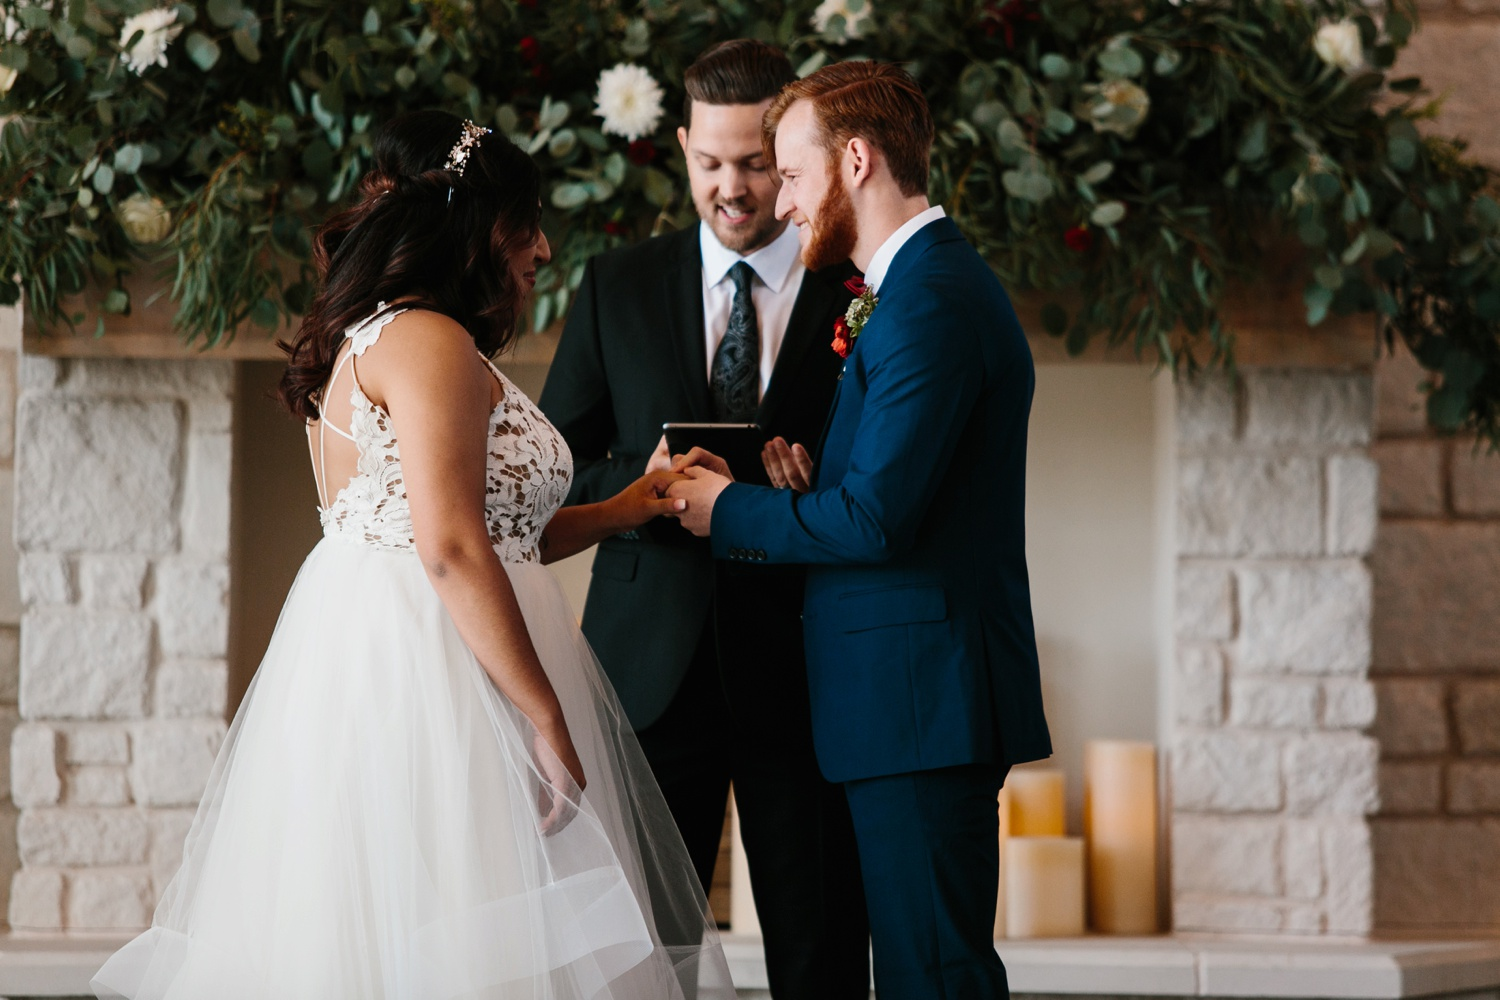 Grant + Lysette | a vibrant, deep burgundy and navy, and mixed metals wedding at Hidden Pines Chapel by North Texas Wedding Photographer Rachel Meagan Photography 090